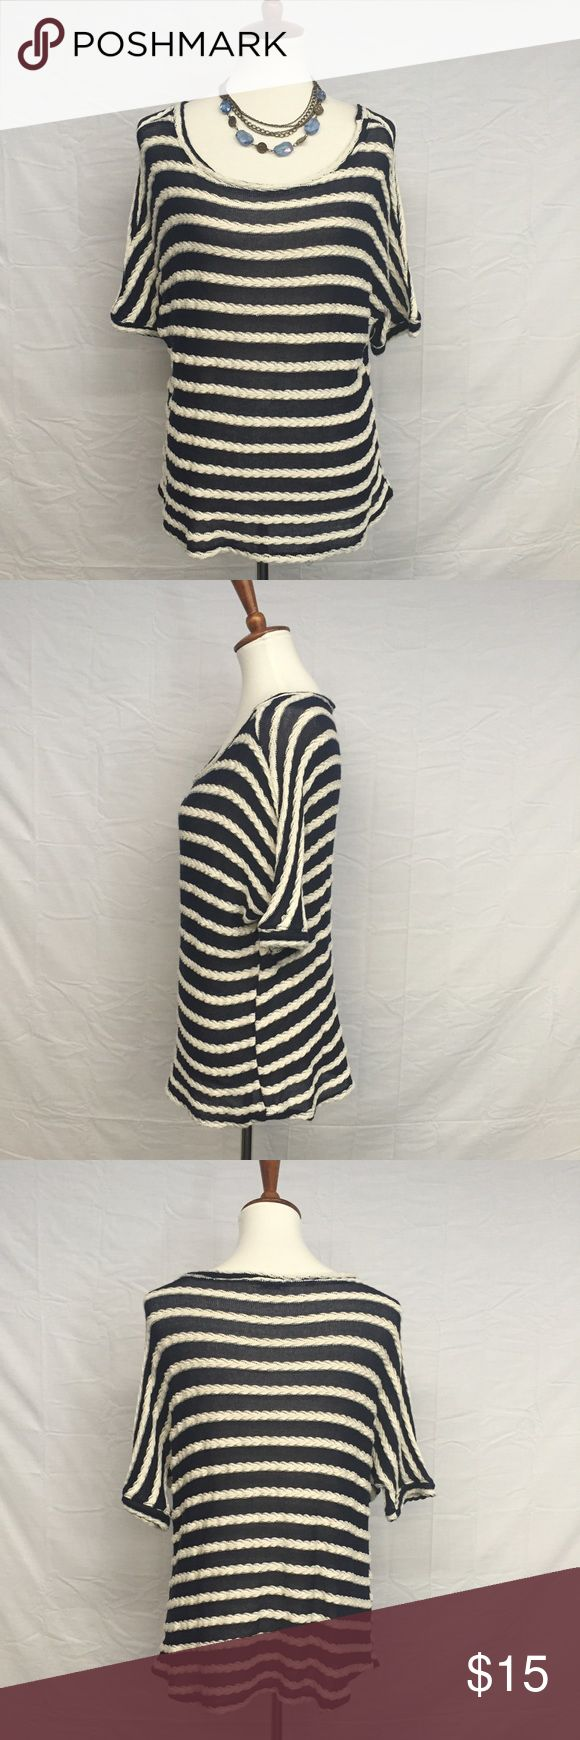 KUT From The Kloth Nautical Braided Stripes Tee Amazing navy blue and white stripe tee from KUT From The Kloth! The white stripes are braided and the navy blue stripes are sheer knit. Dolman sleeves. In excellent preowned condition. Some minor wear throughout. Smoke and pet free home. Kut from the Kloth Tops Tees - Short Sleeve